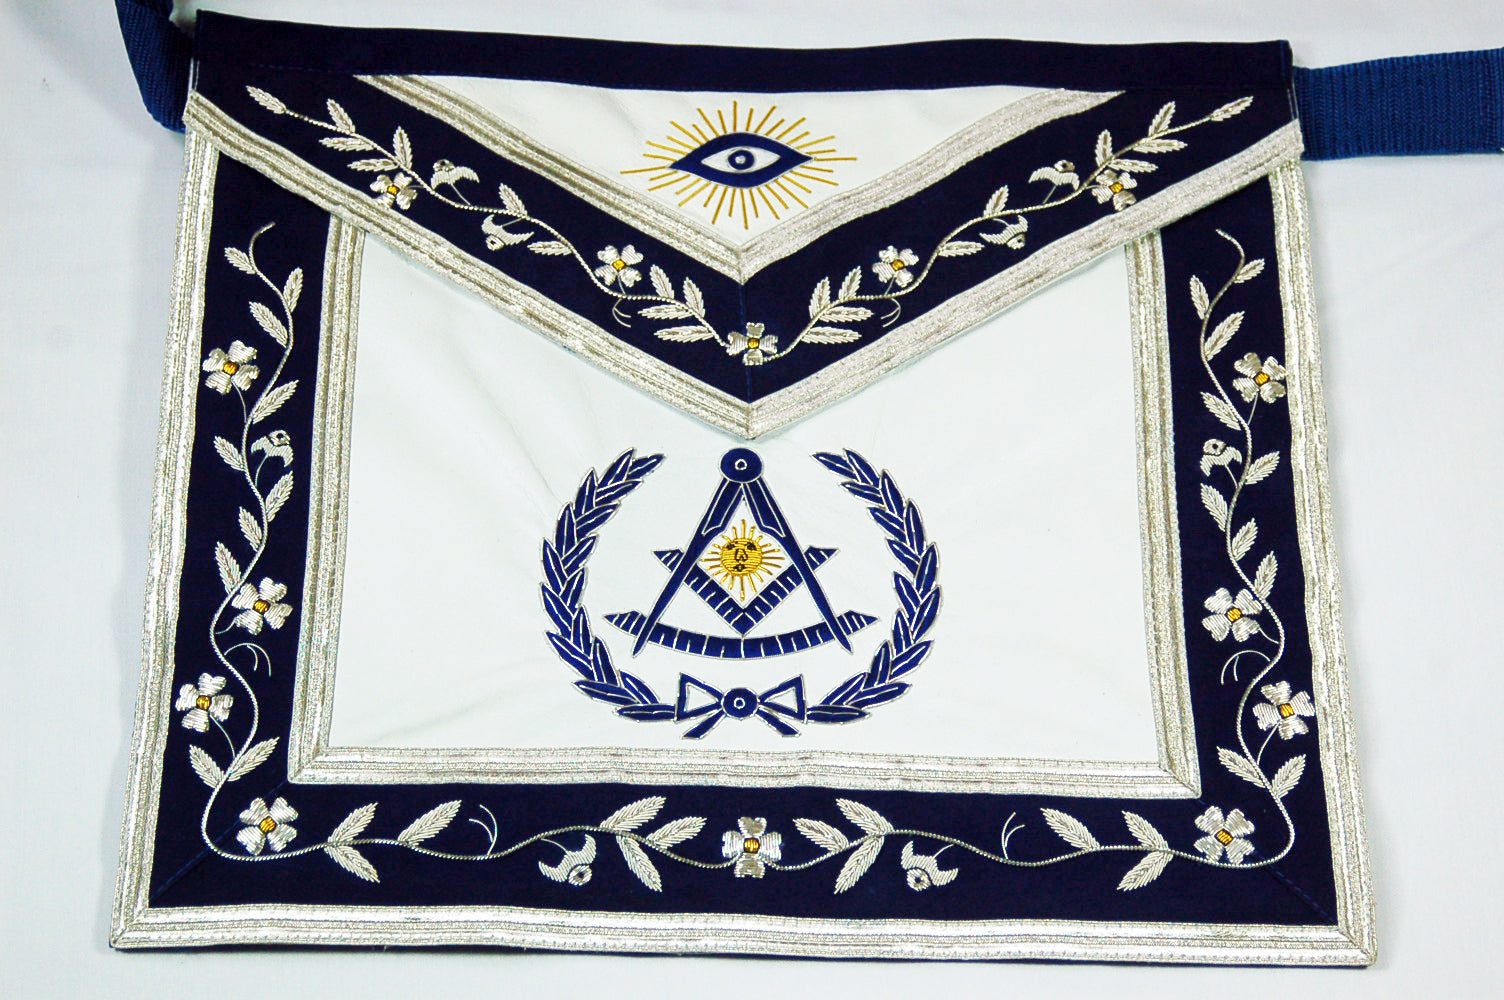 Blue Lodge Aprons | Masonic Aprons and Supplies